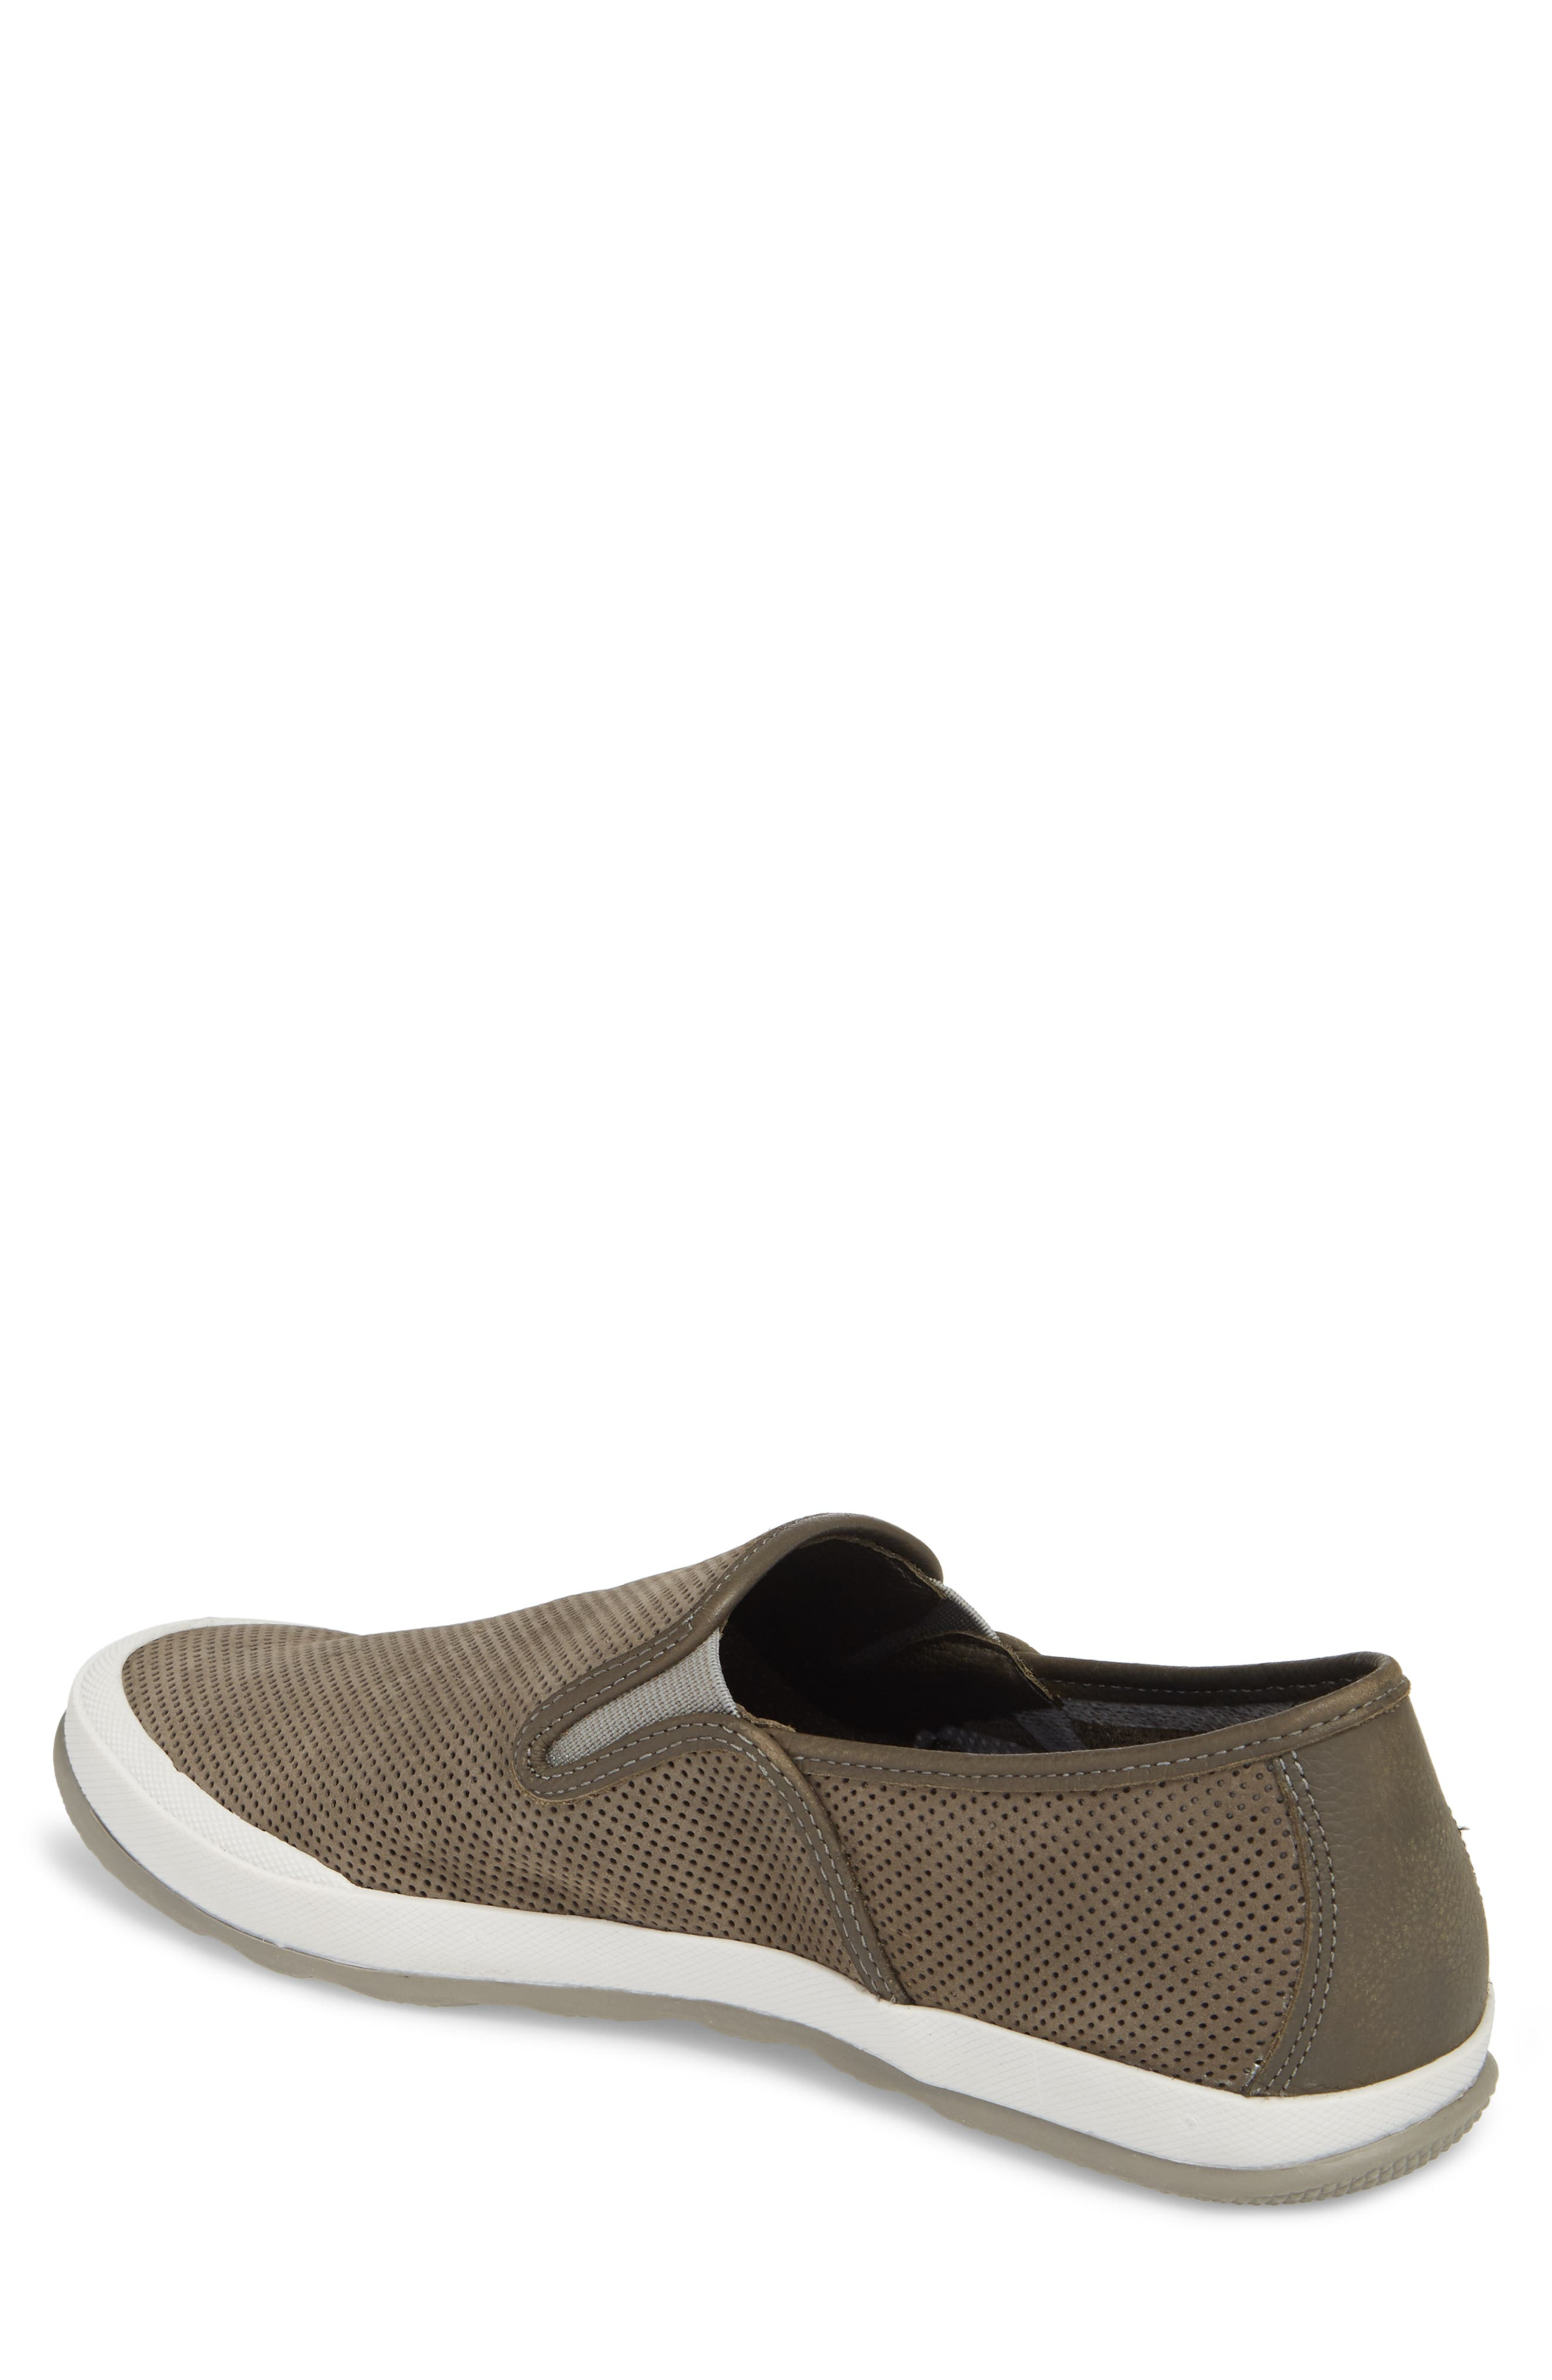 'Mullen' Slip-On,                             Alternate thumbnail 2, color,                             Grey Perfed Nubuck